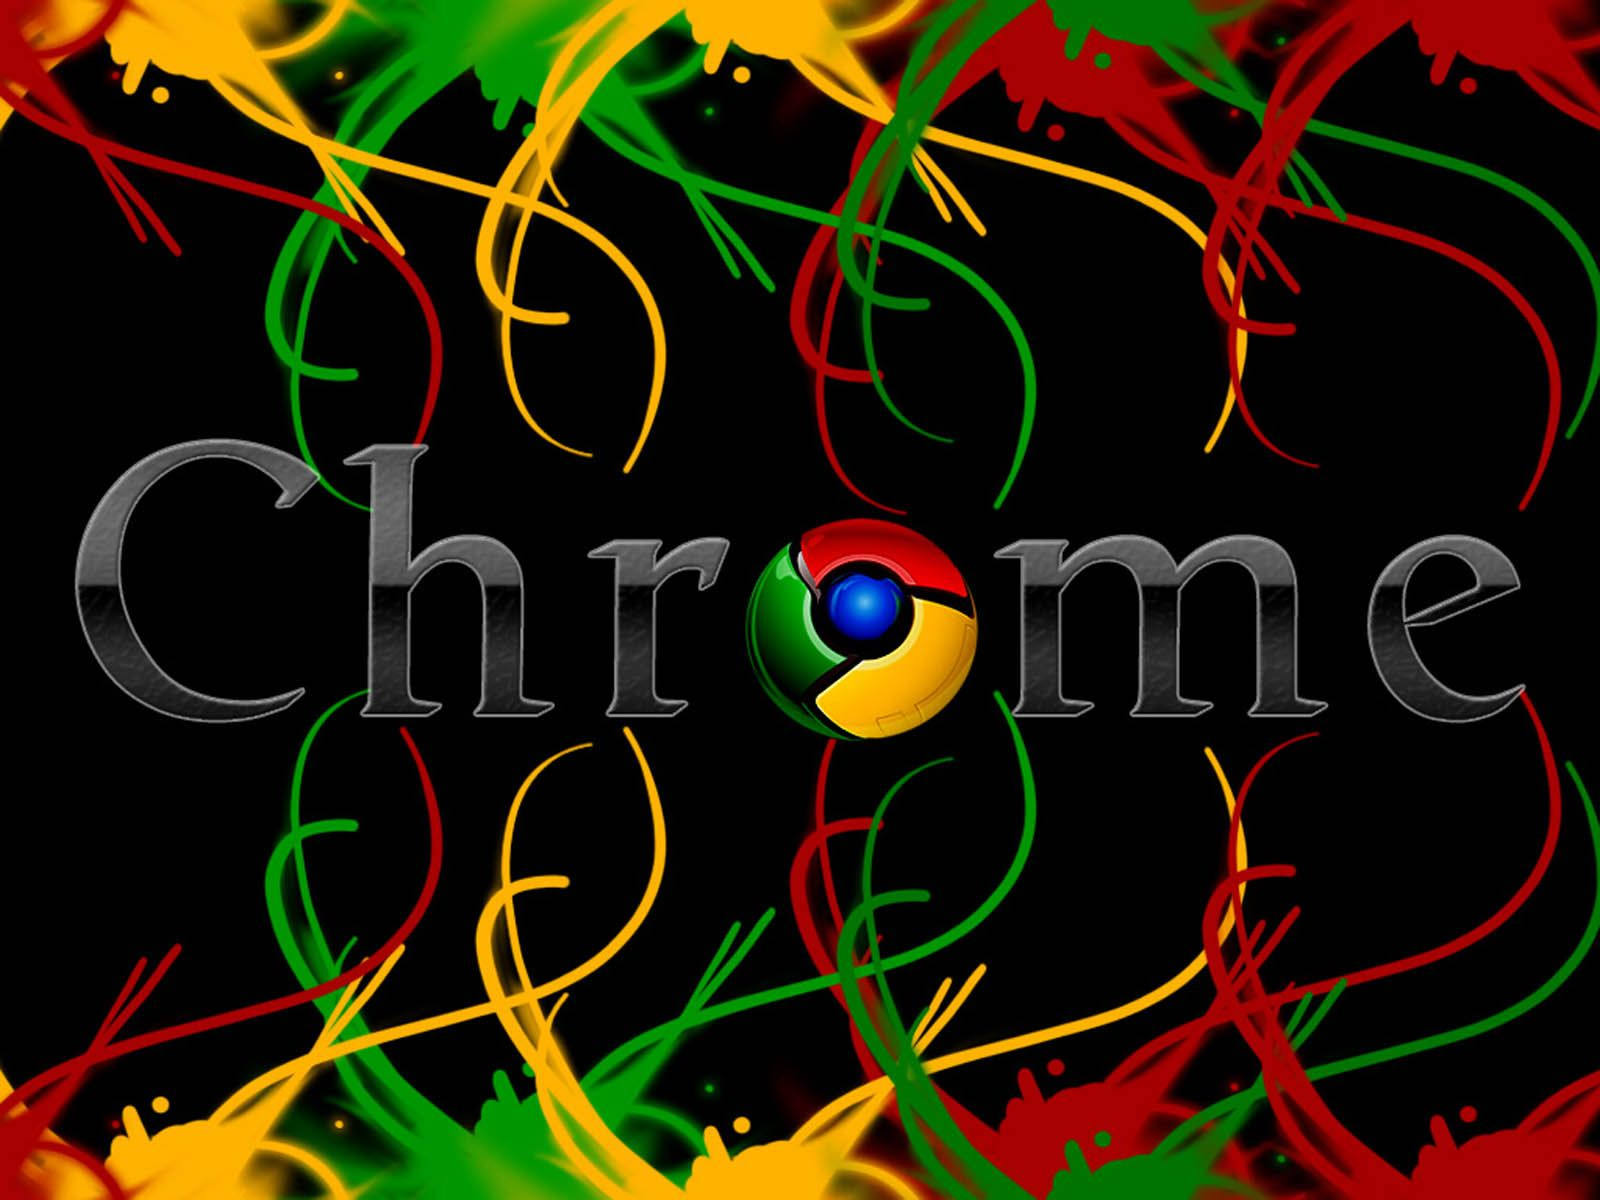 Google Chrome Wallpapers Google Chrome 305519 Hd